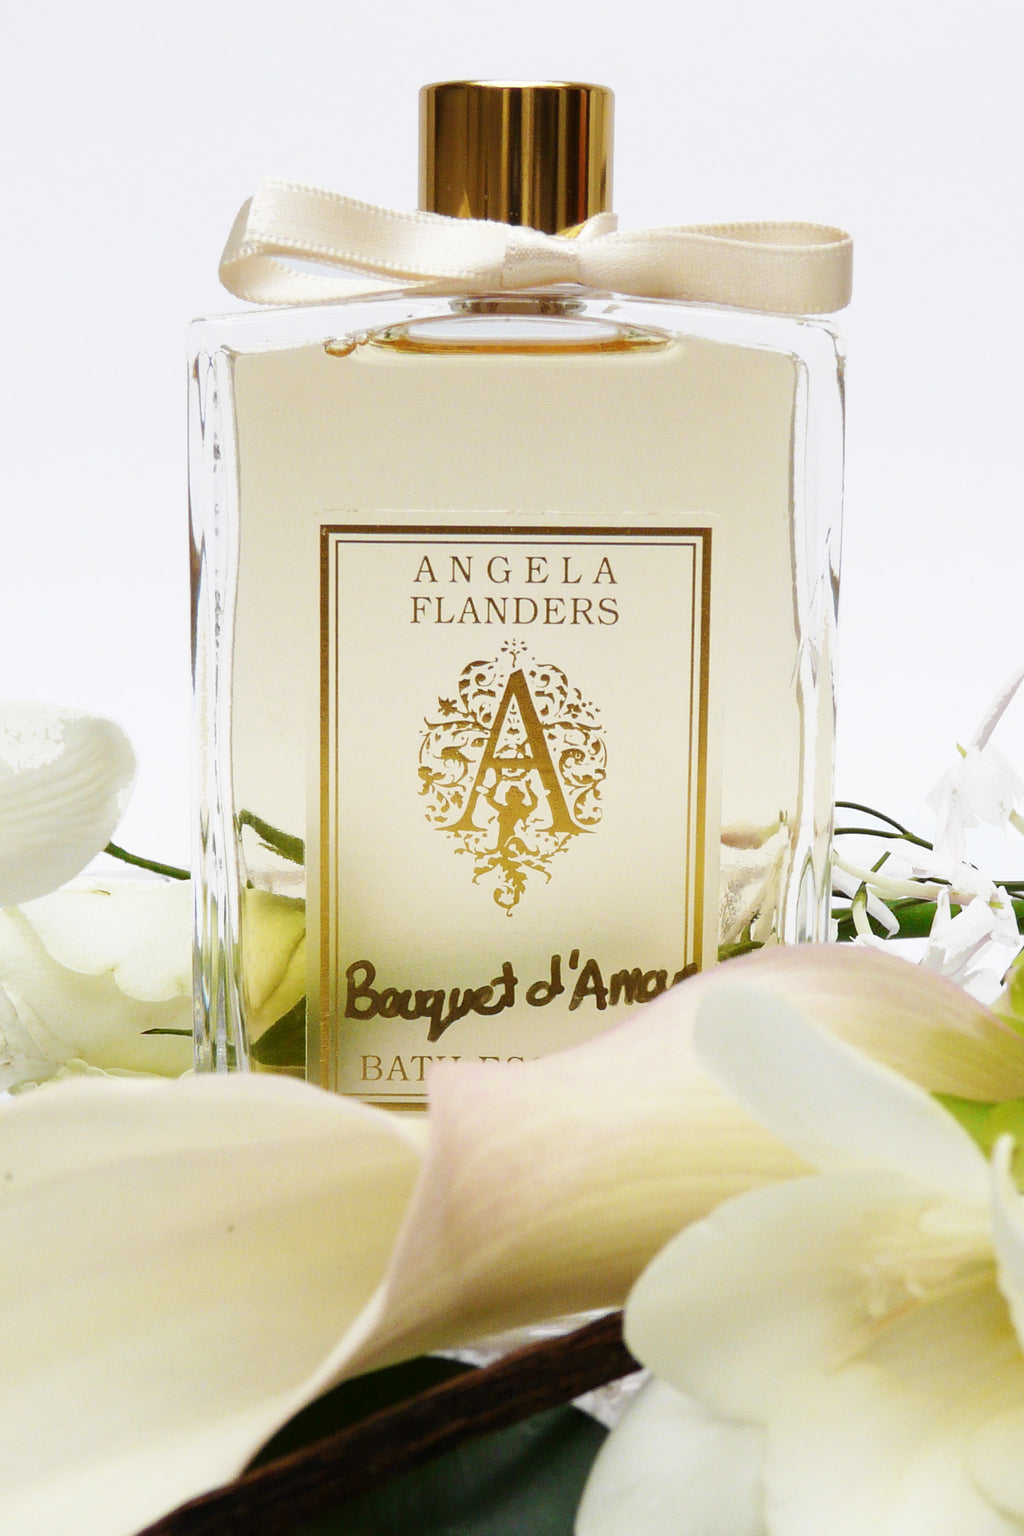 Angela Flanders Bouquet d'Amour Bath Silk 100ml